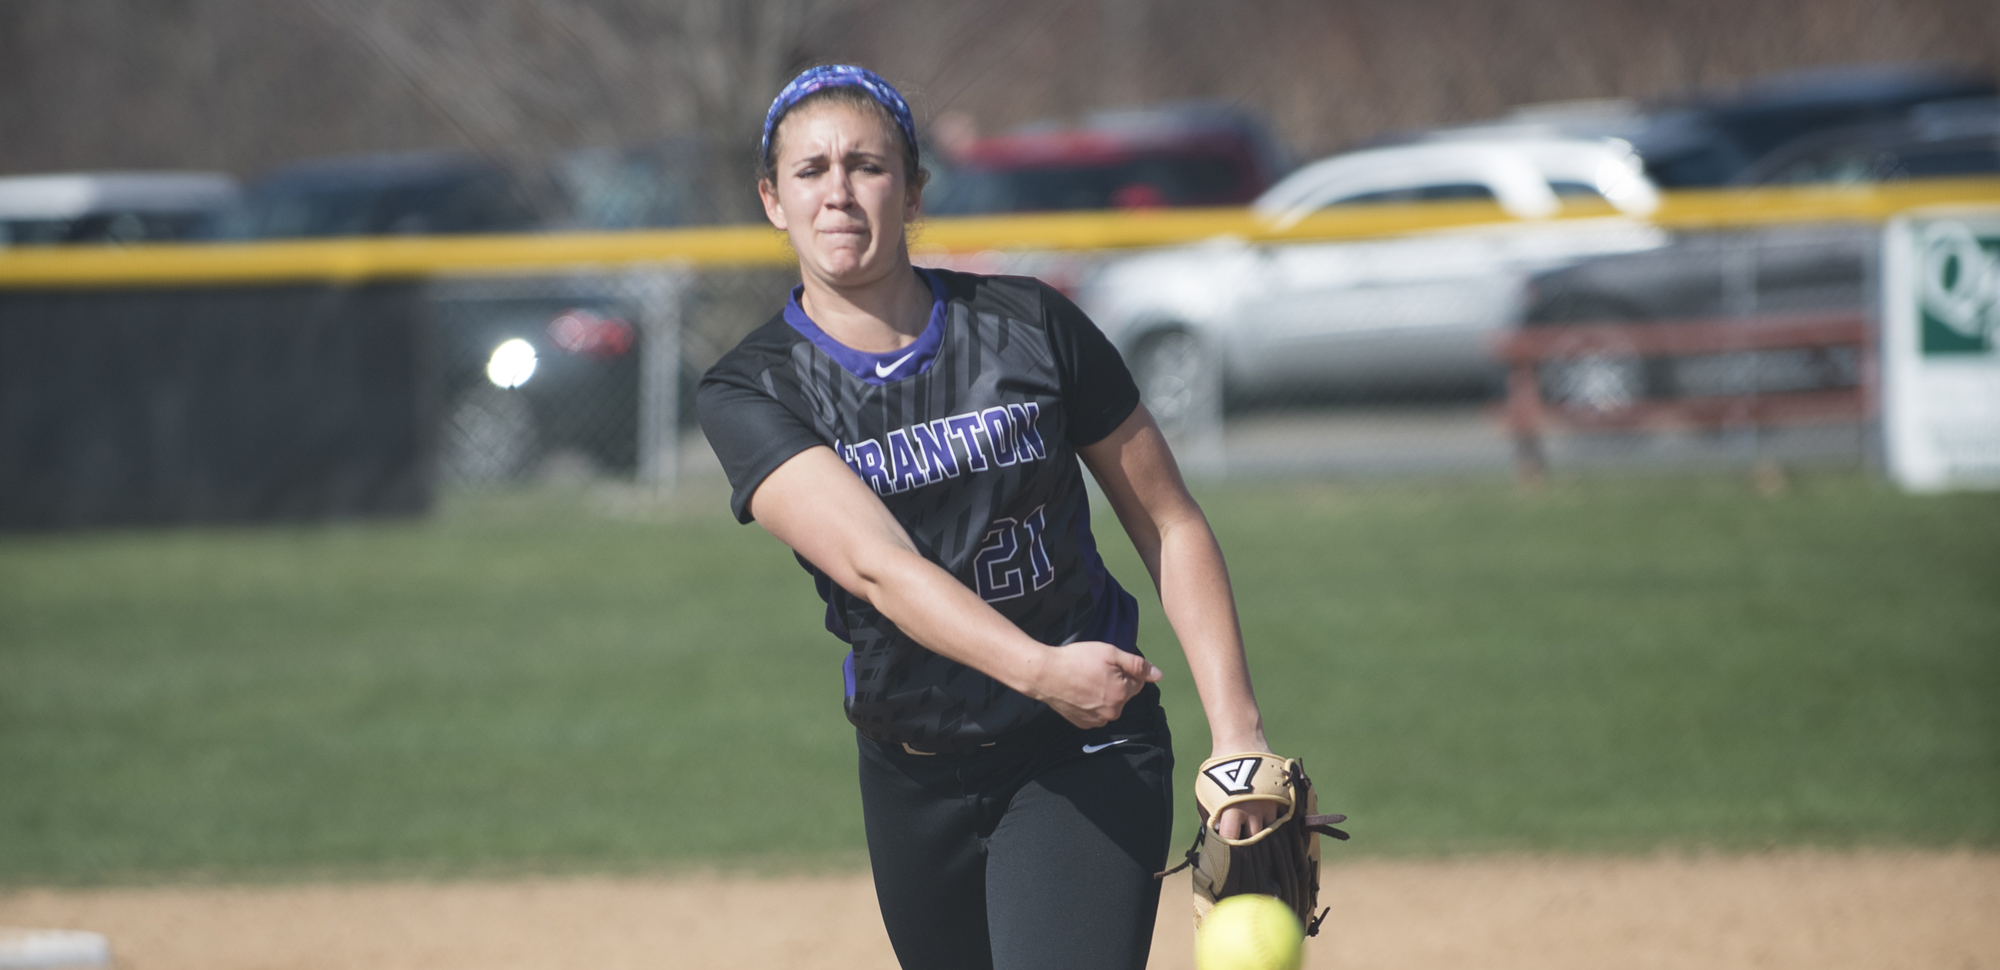 Morgan Rentzheimer tossed a complete game shutout in Scranton's 1-0 win over Concordia in Wednesday's first game.